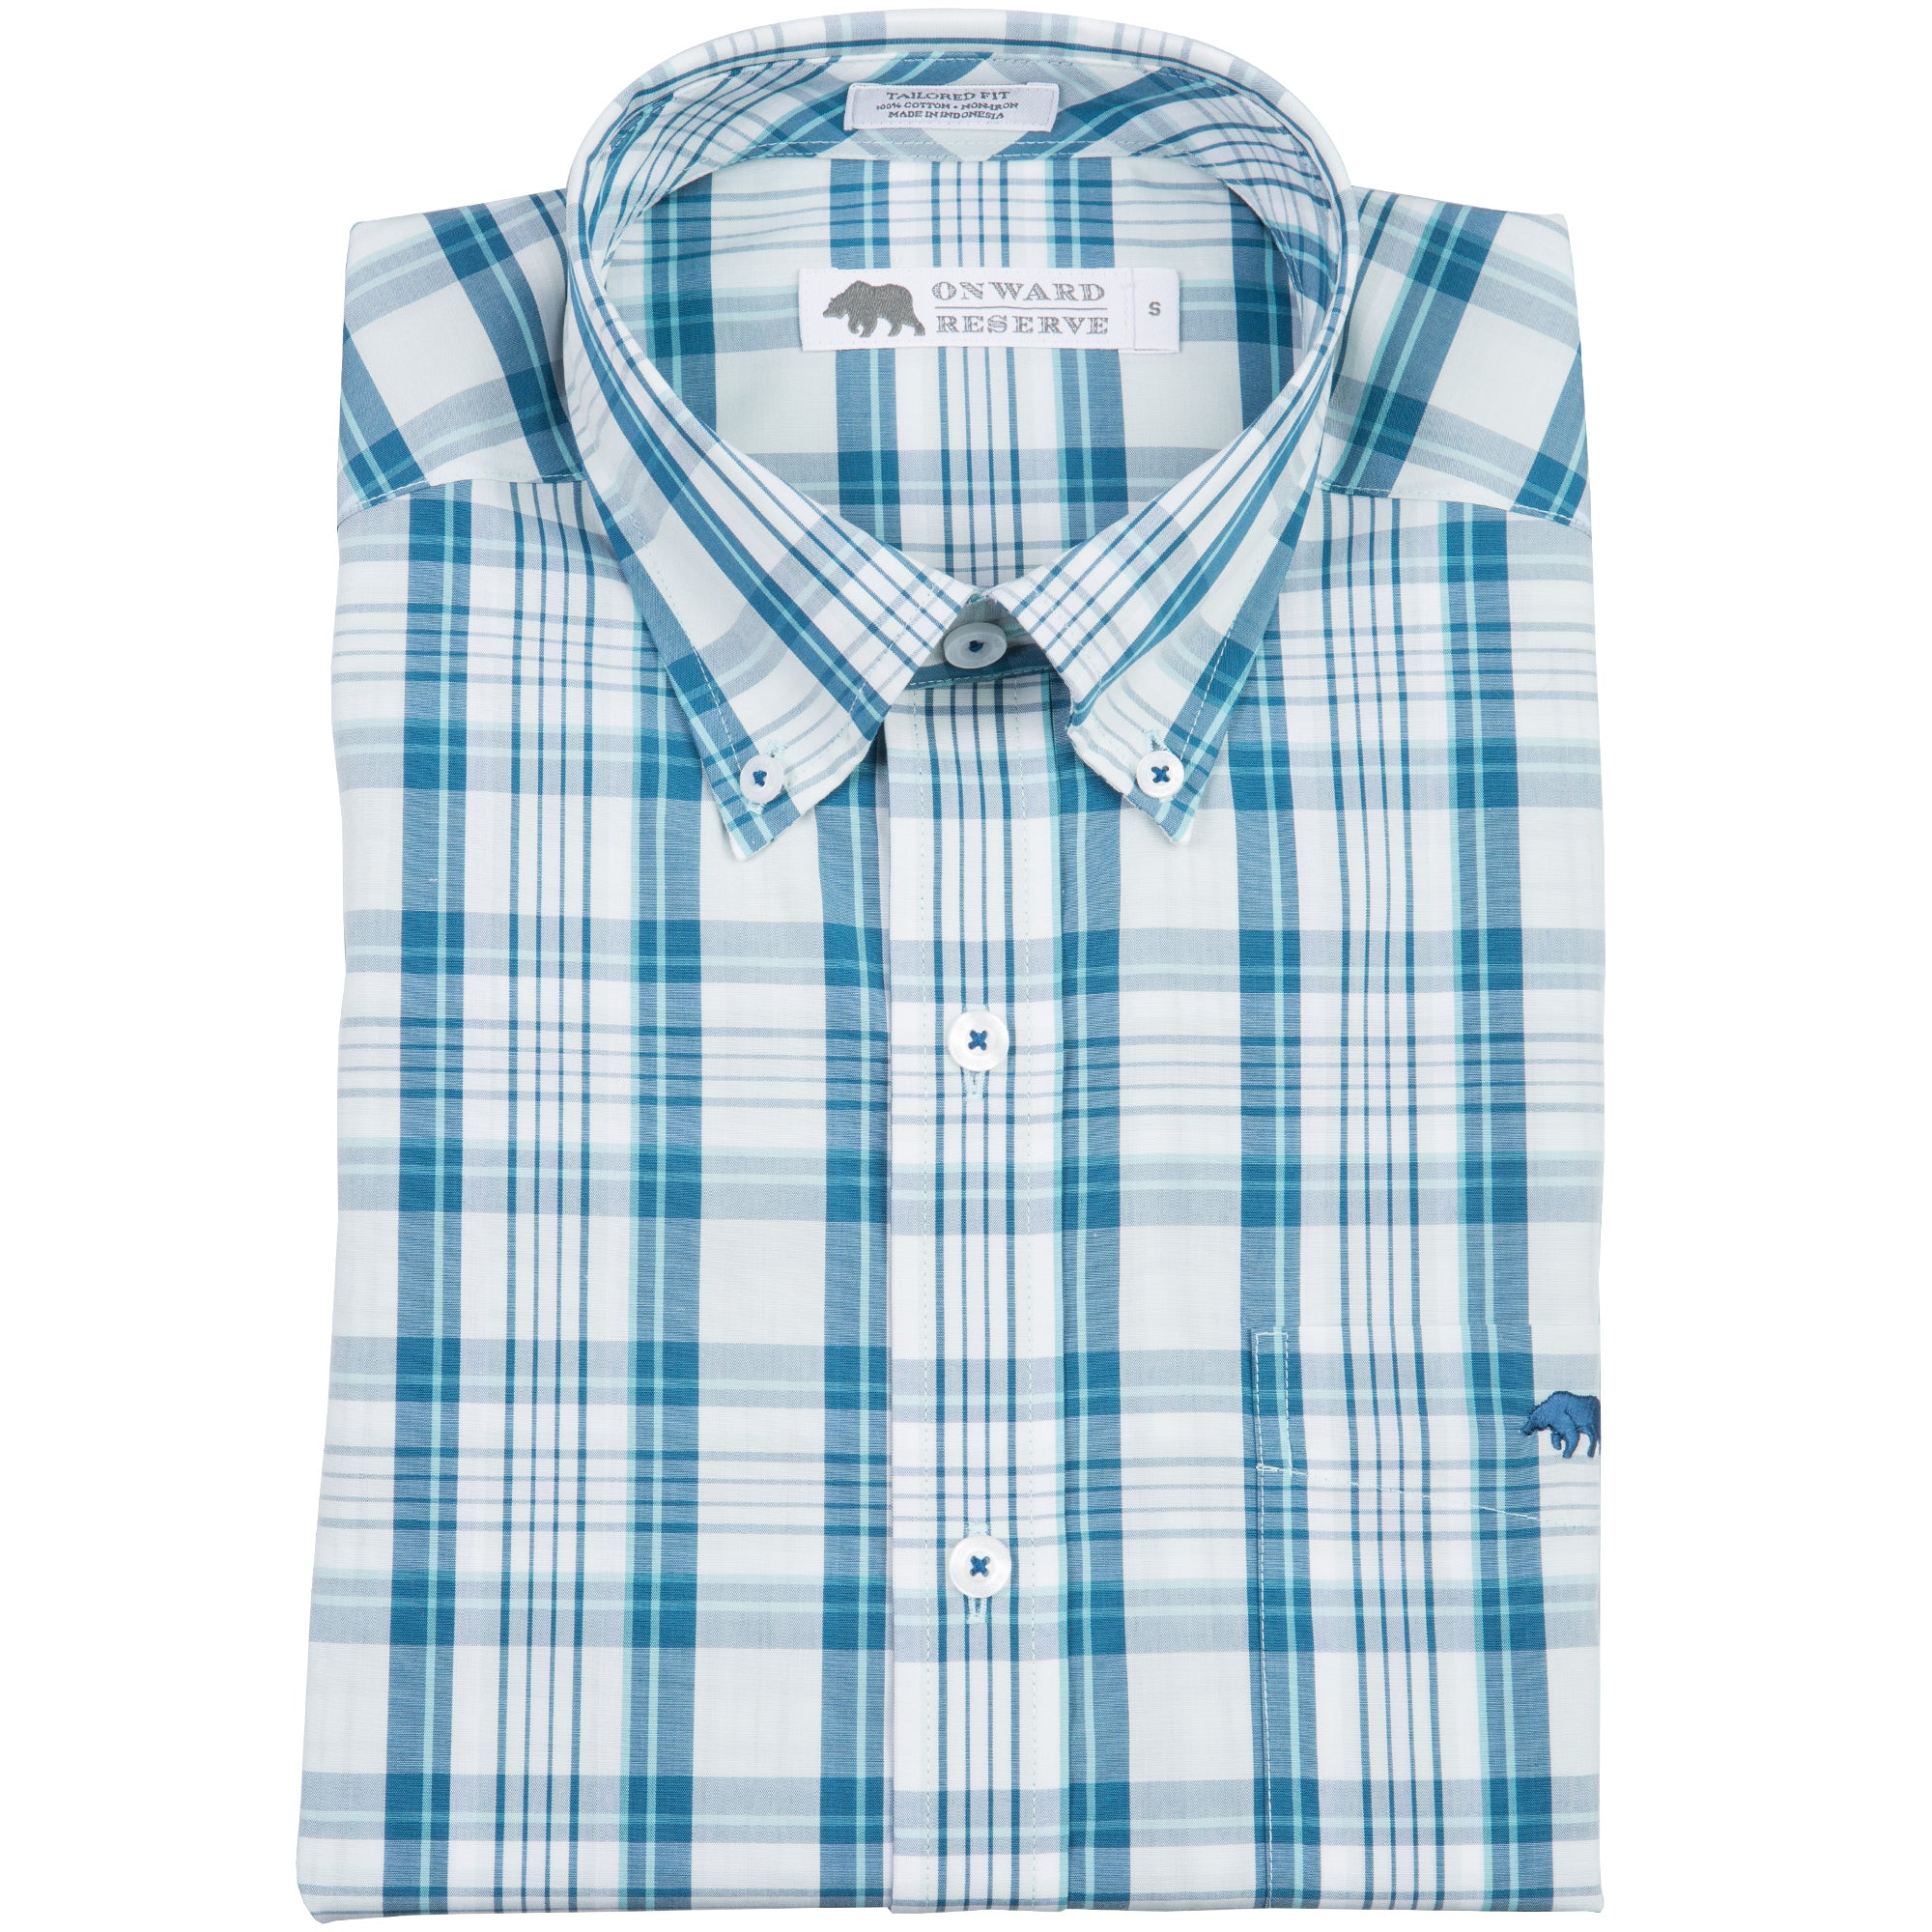 Delany Tailored Fit Button Down - OnwardReserve